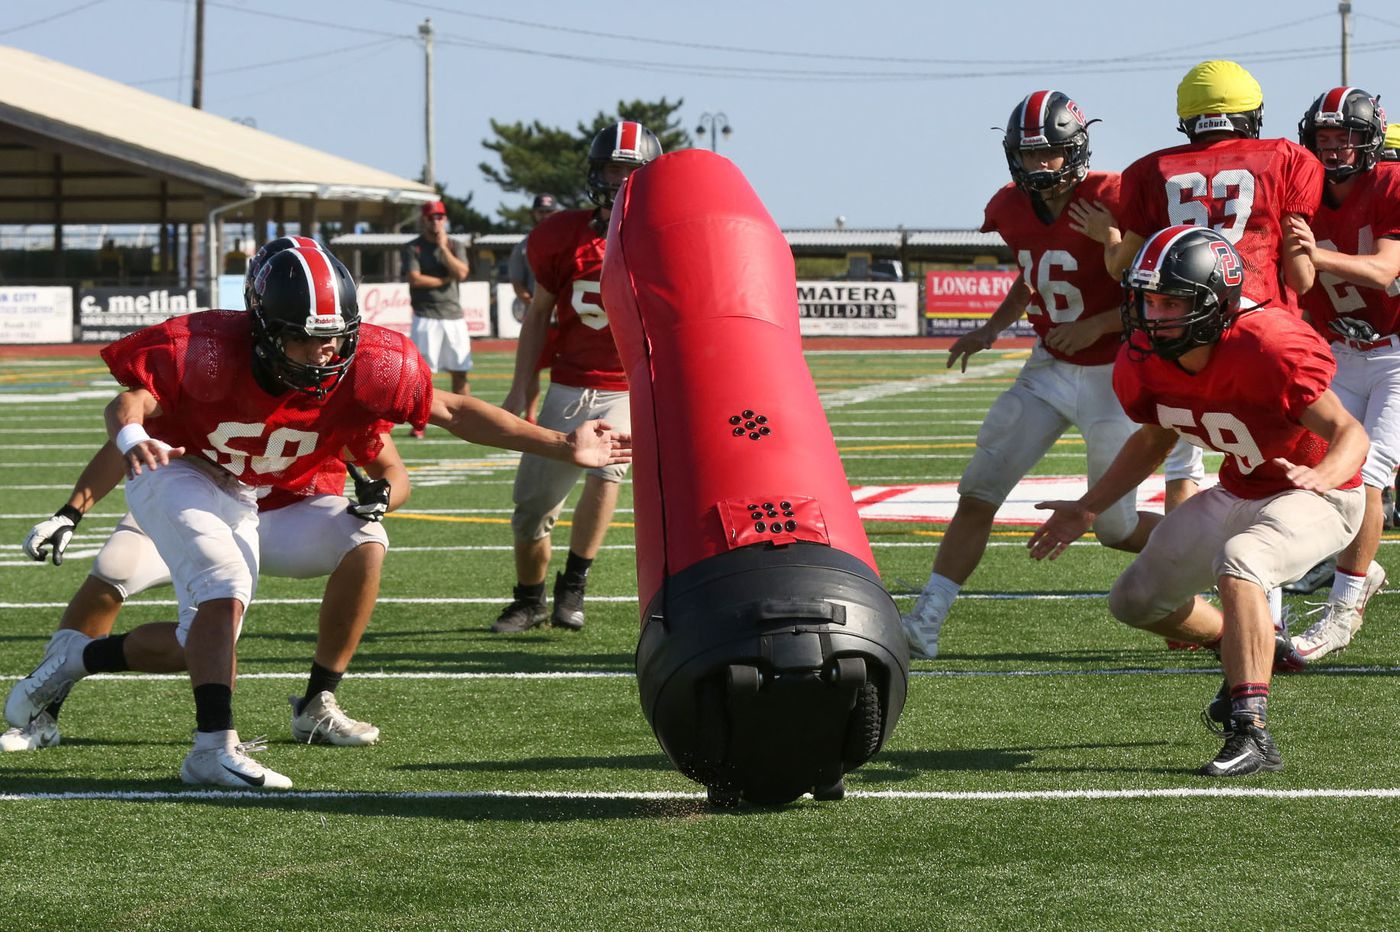 Inside the game: Motorized tackling 'Dummy' a big hit for Ocean City football